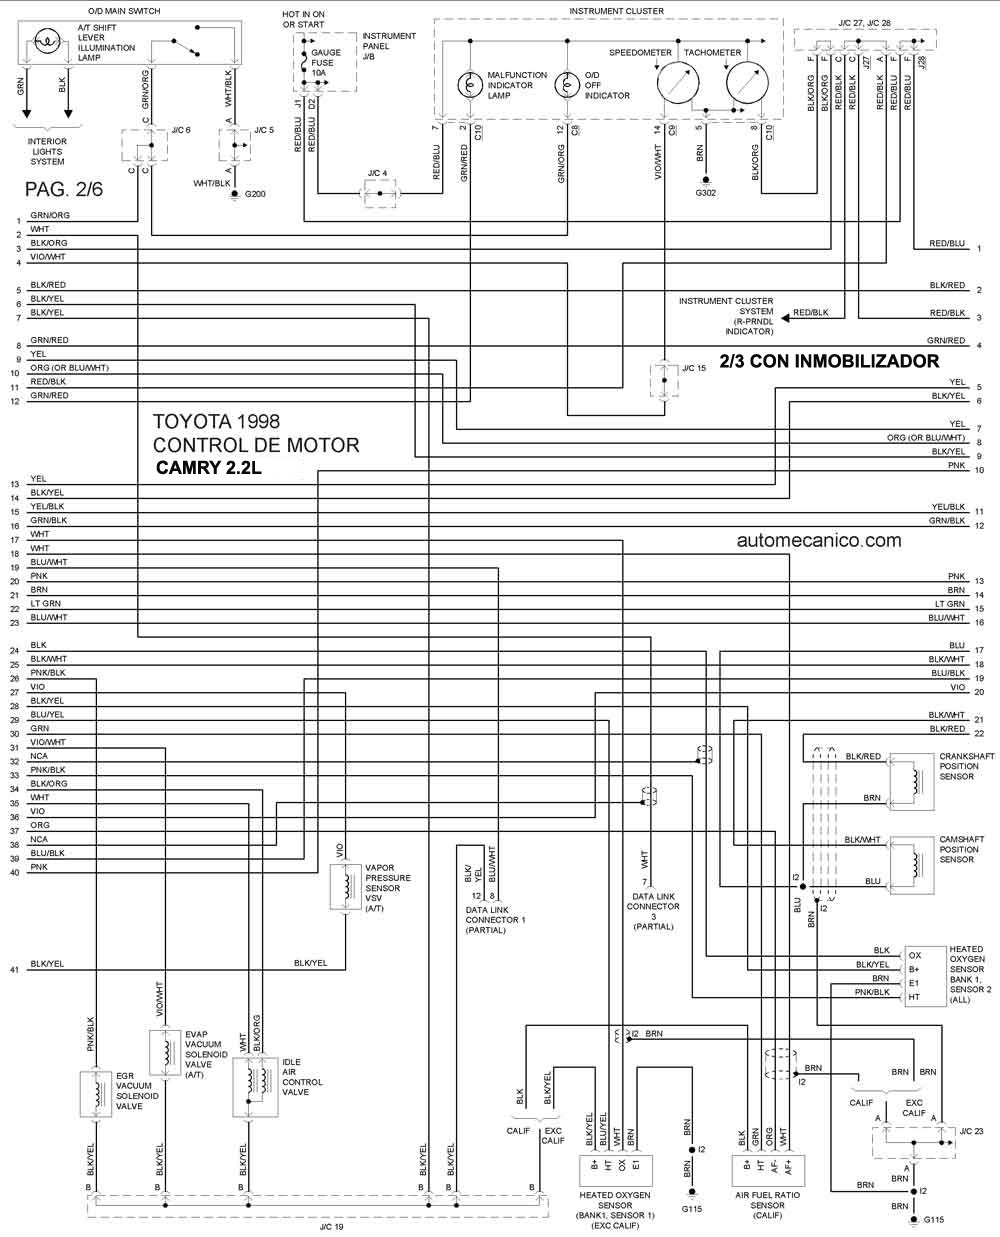 Diagrama Electrico De Toyota Camry 1999 in addition QI4d 4699 as well 2008 Chevrolet Impala in addition Chrysler Fifth Avenue in addition 2017 Dodge Charger Pictures C26377. on used 2010 chrysler 300